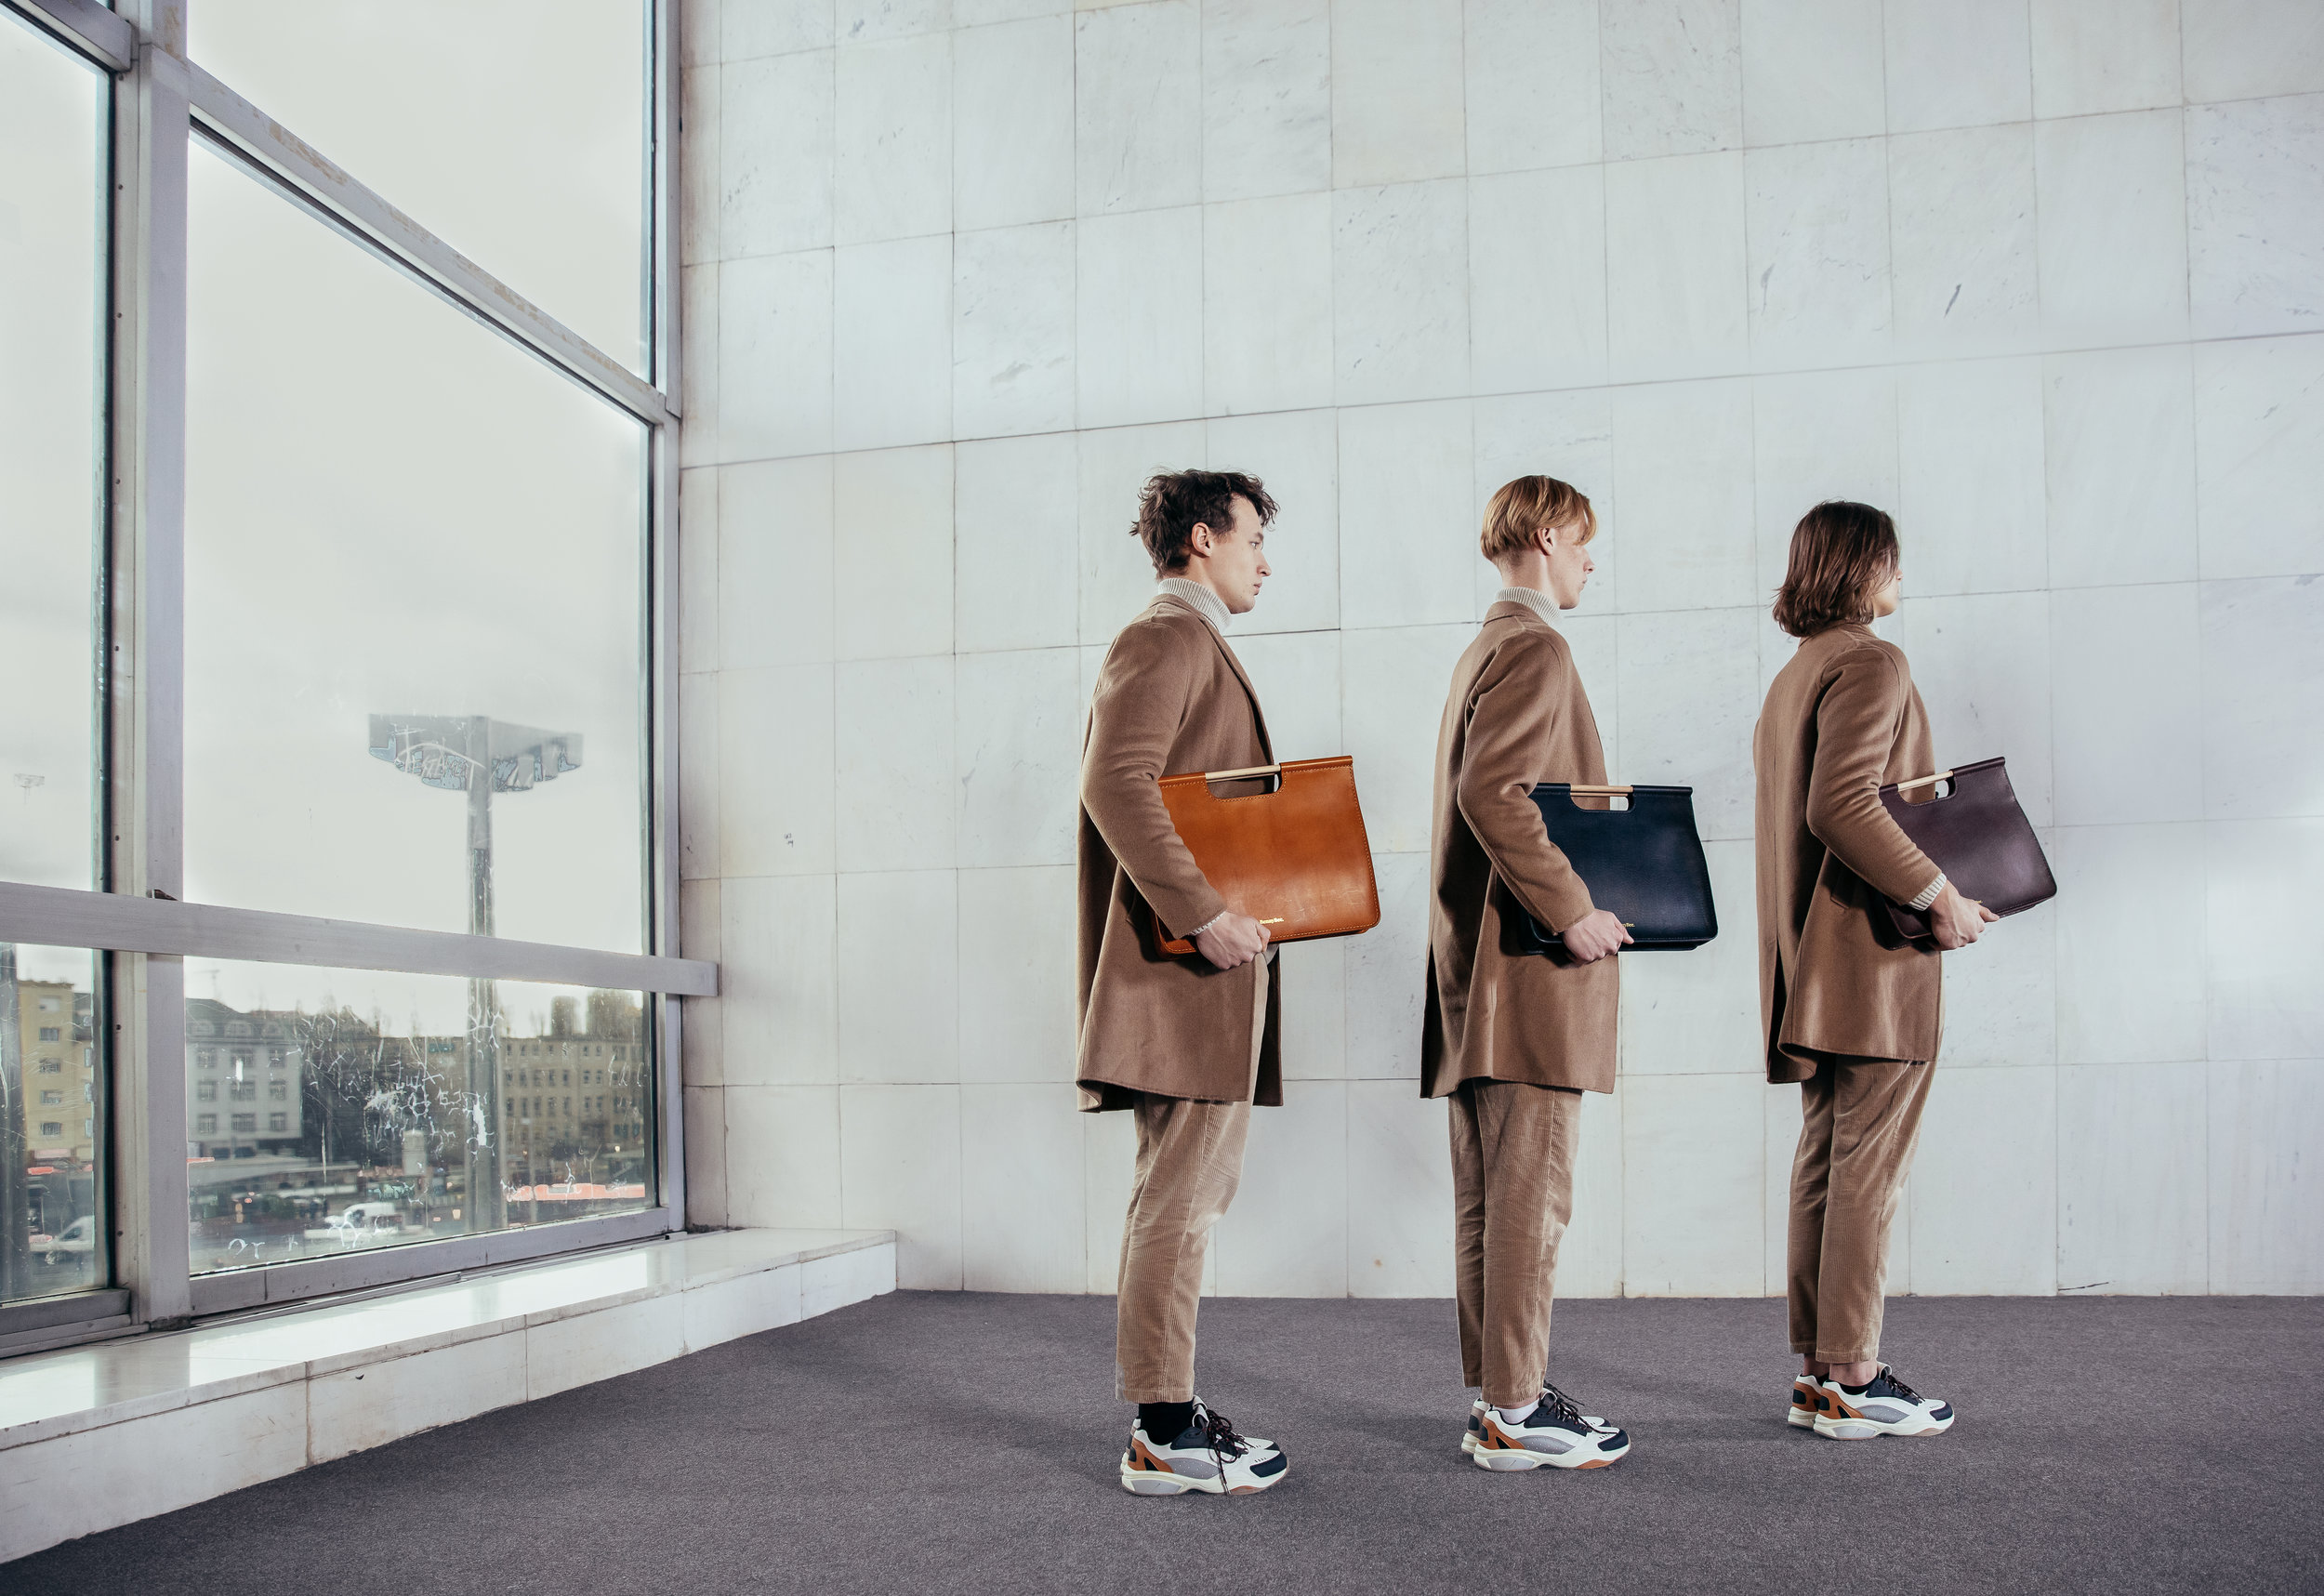 Handmade vegetable tanned leather attache work bags in cognac, chestnut, and black